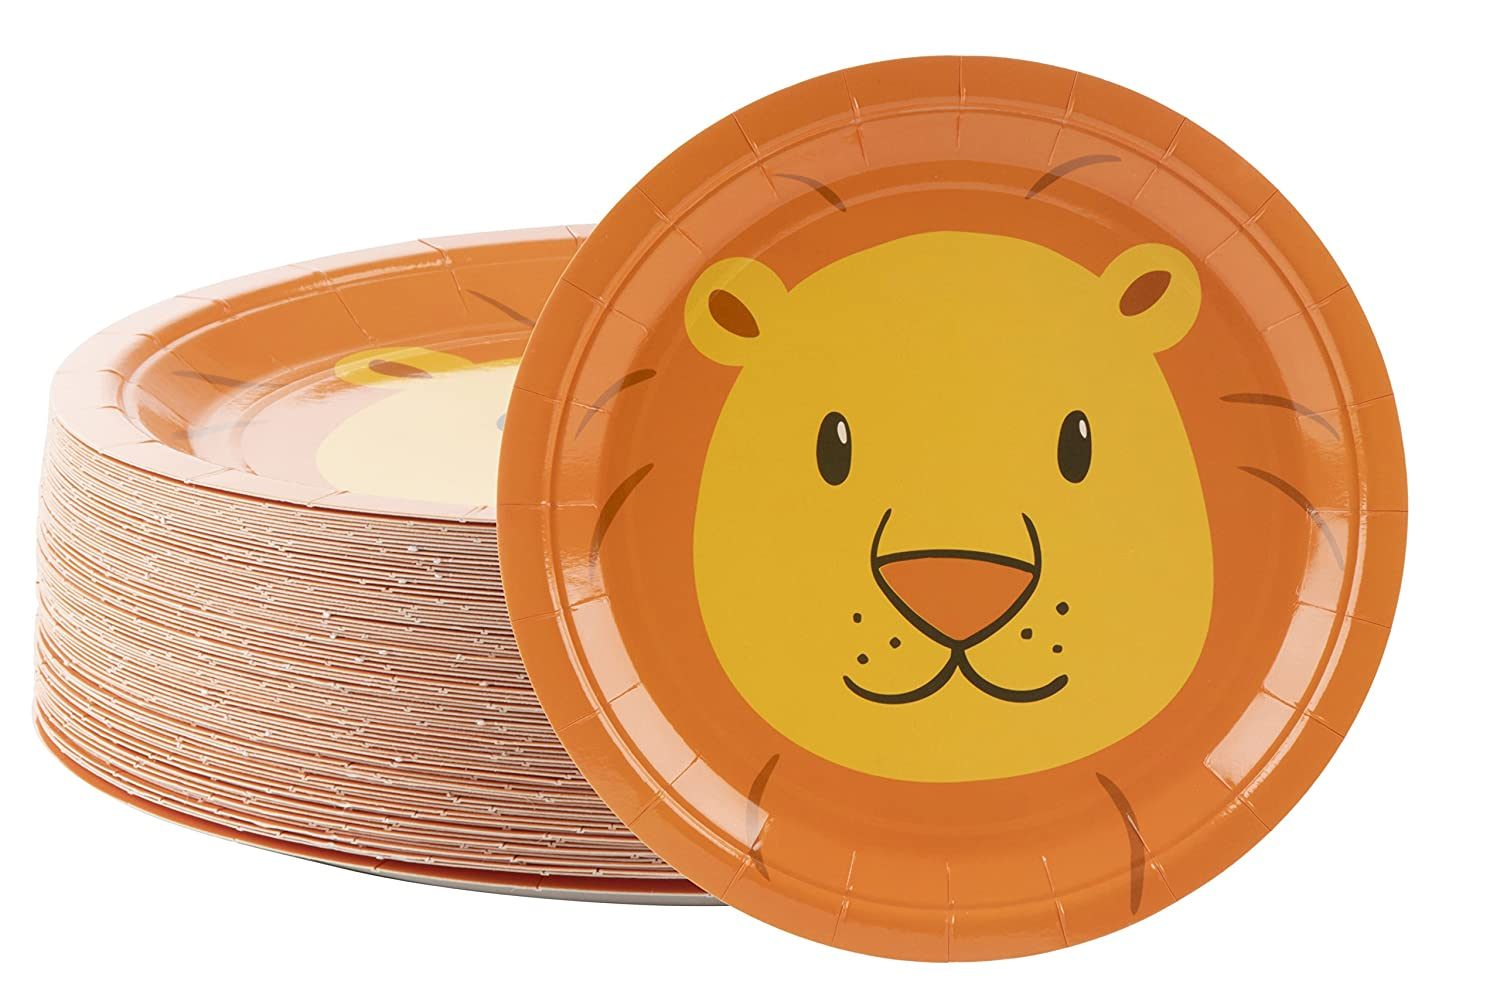 Disposable Plates - 80-Count Paper Plates, Lion Party Supplies for Appetizer, Lunch, Dinner, and Dessert, Kids Birthdays, 9 x 9 inches